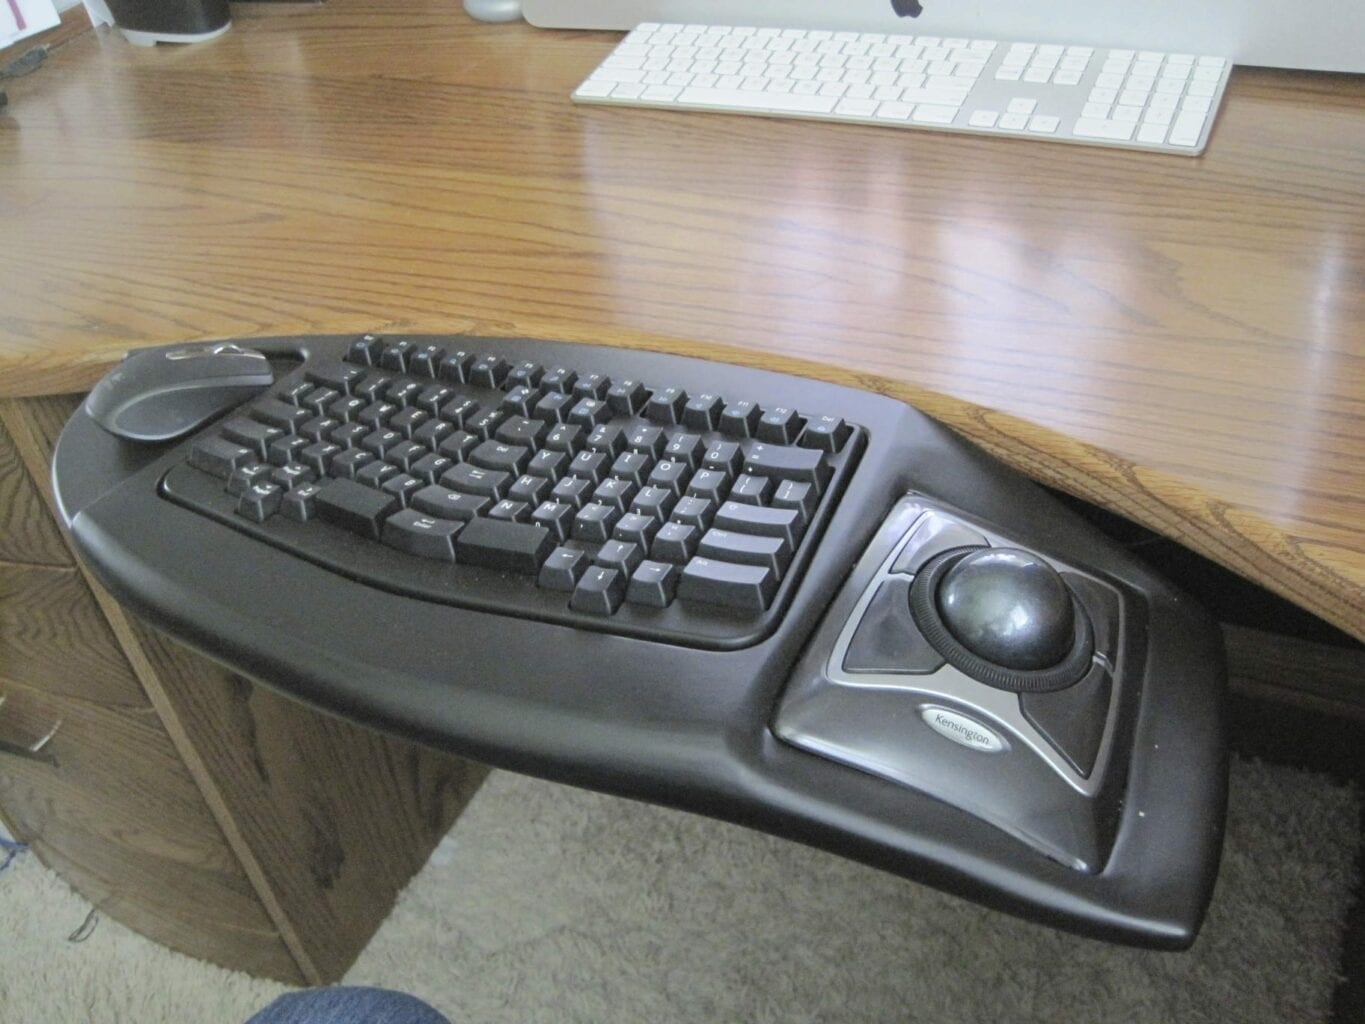 An adapted workstation, including an ergo keyboard and track-ball mouse.